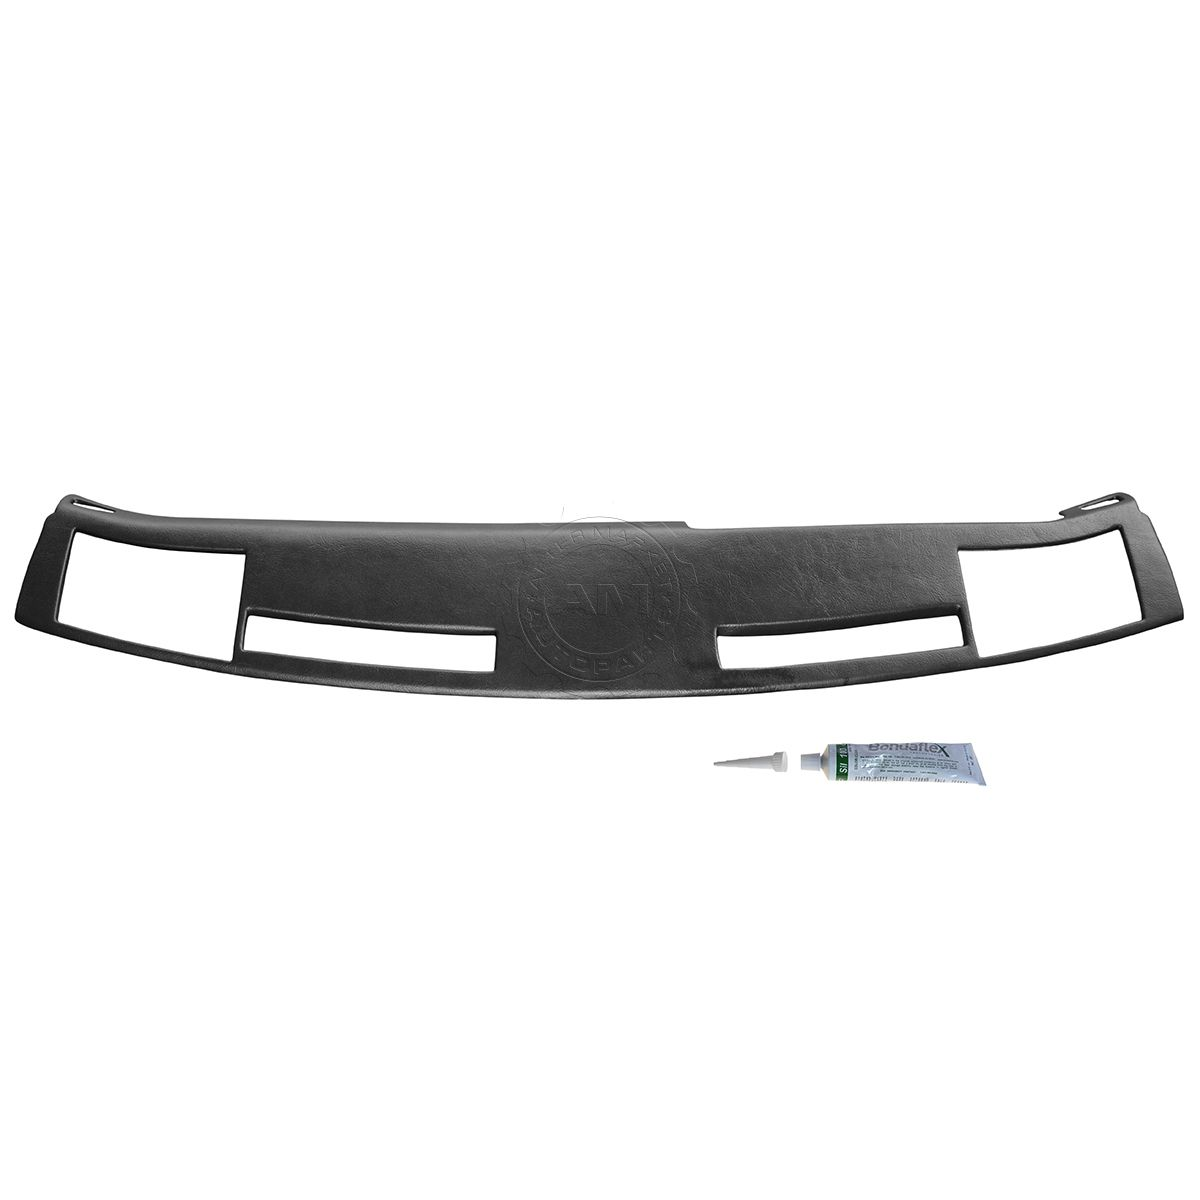 Dash Pad Cover With Side Defrost For Chevy Blazer S10 Gmc Jimmy S 15 On 20 Sonoma